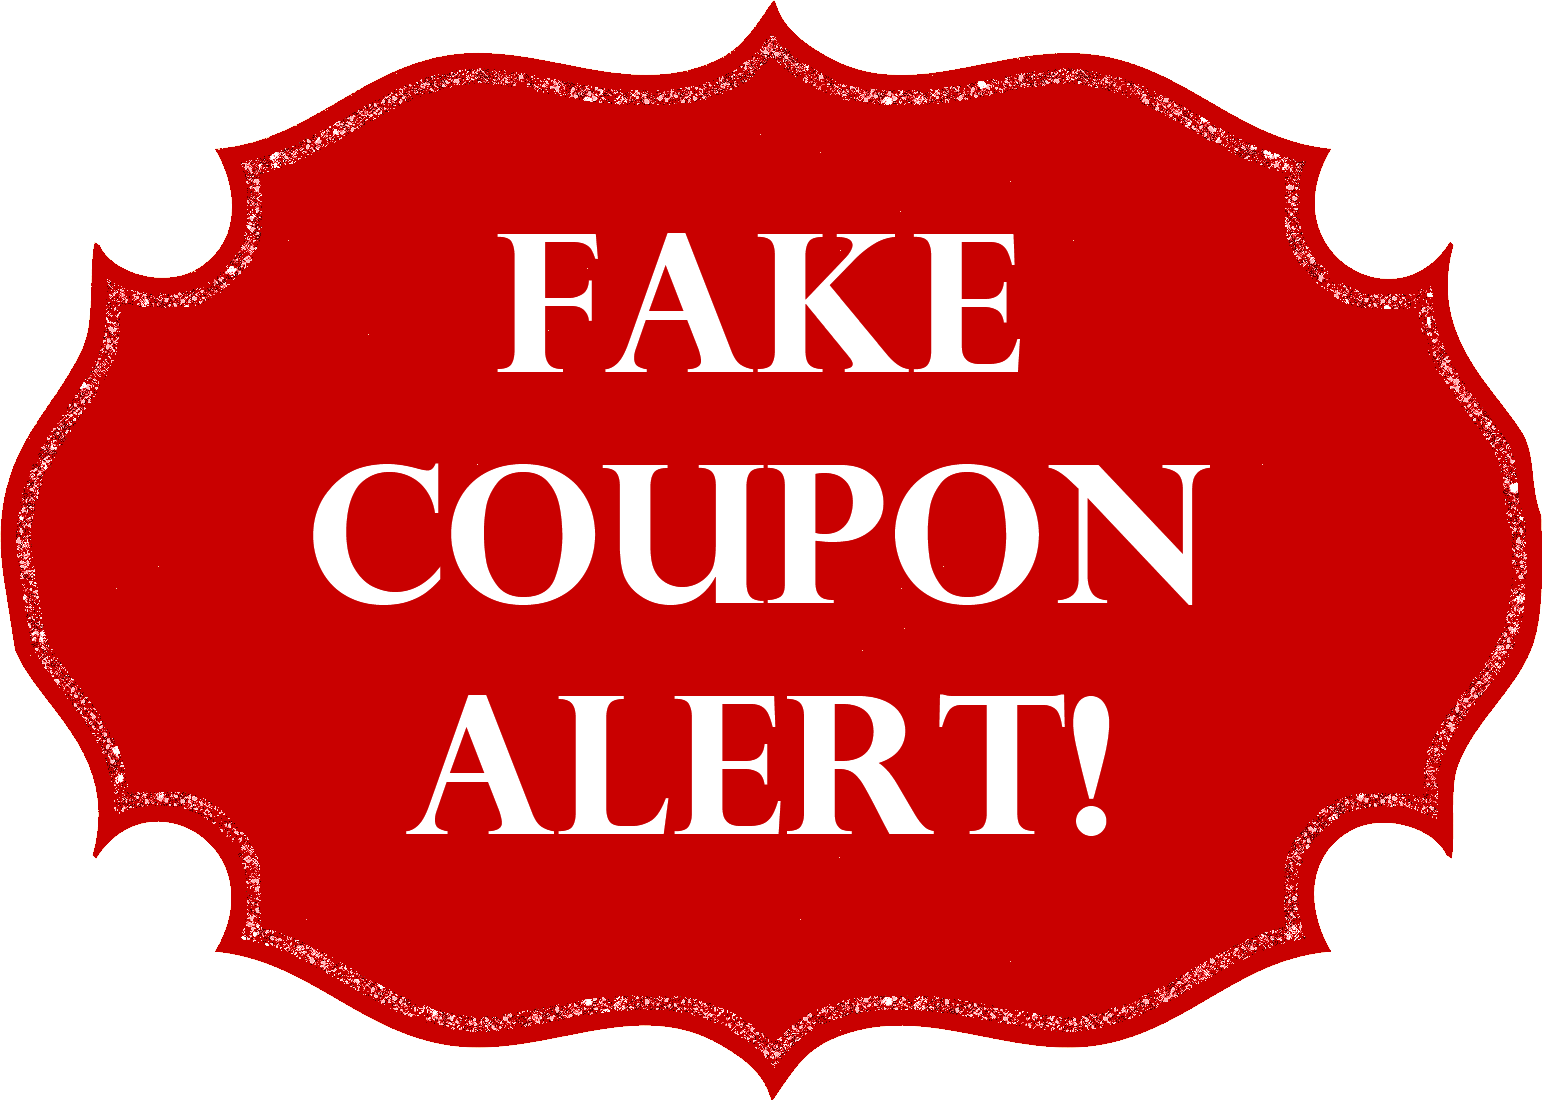 First alert coupon discount codes